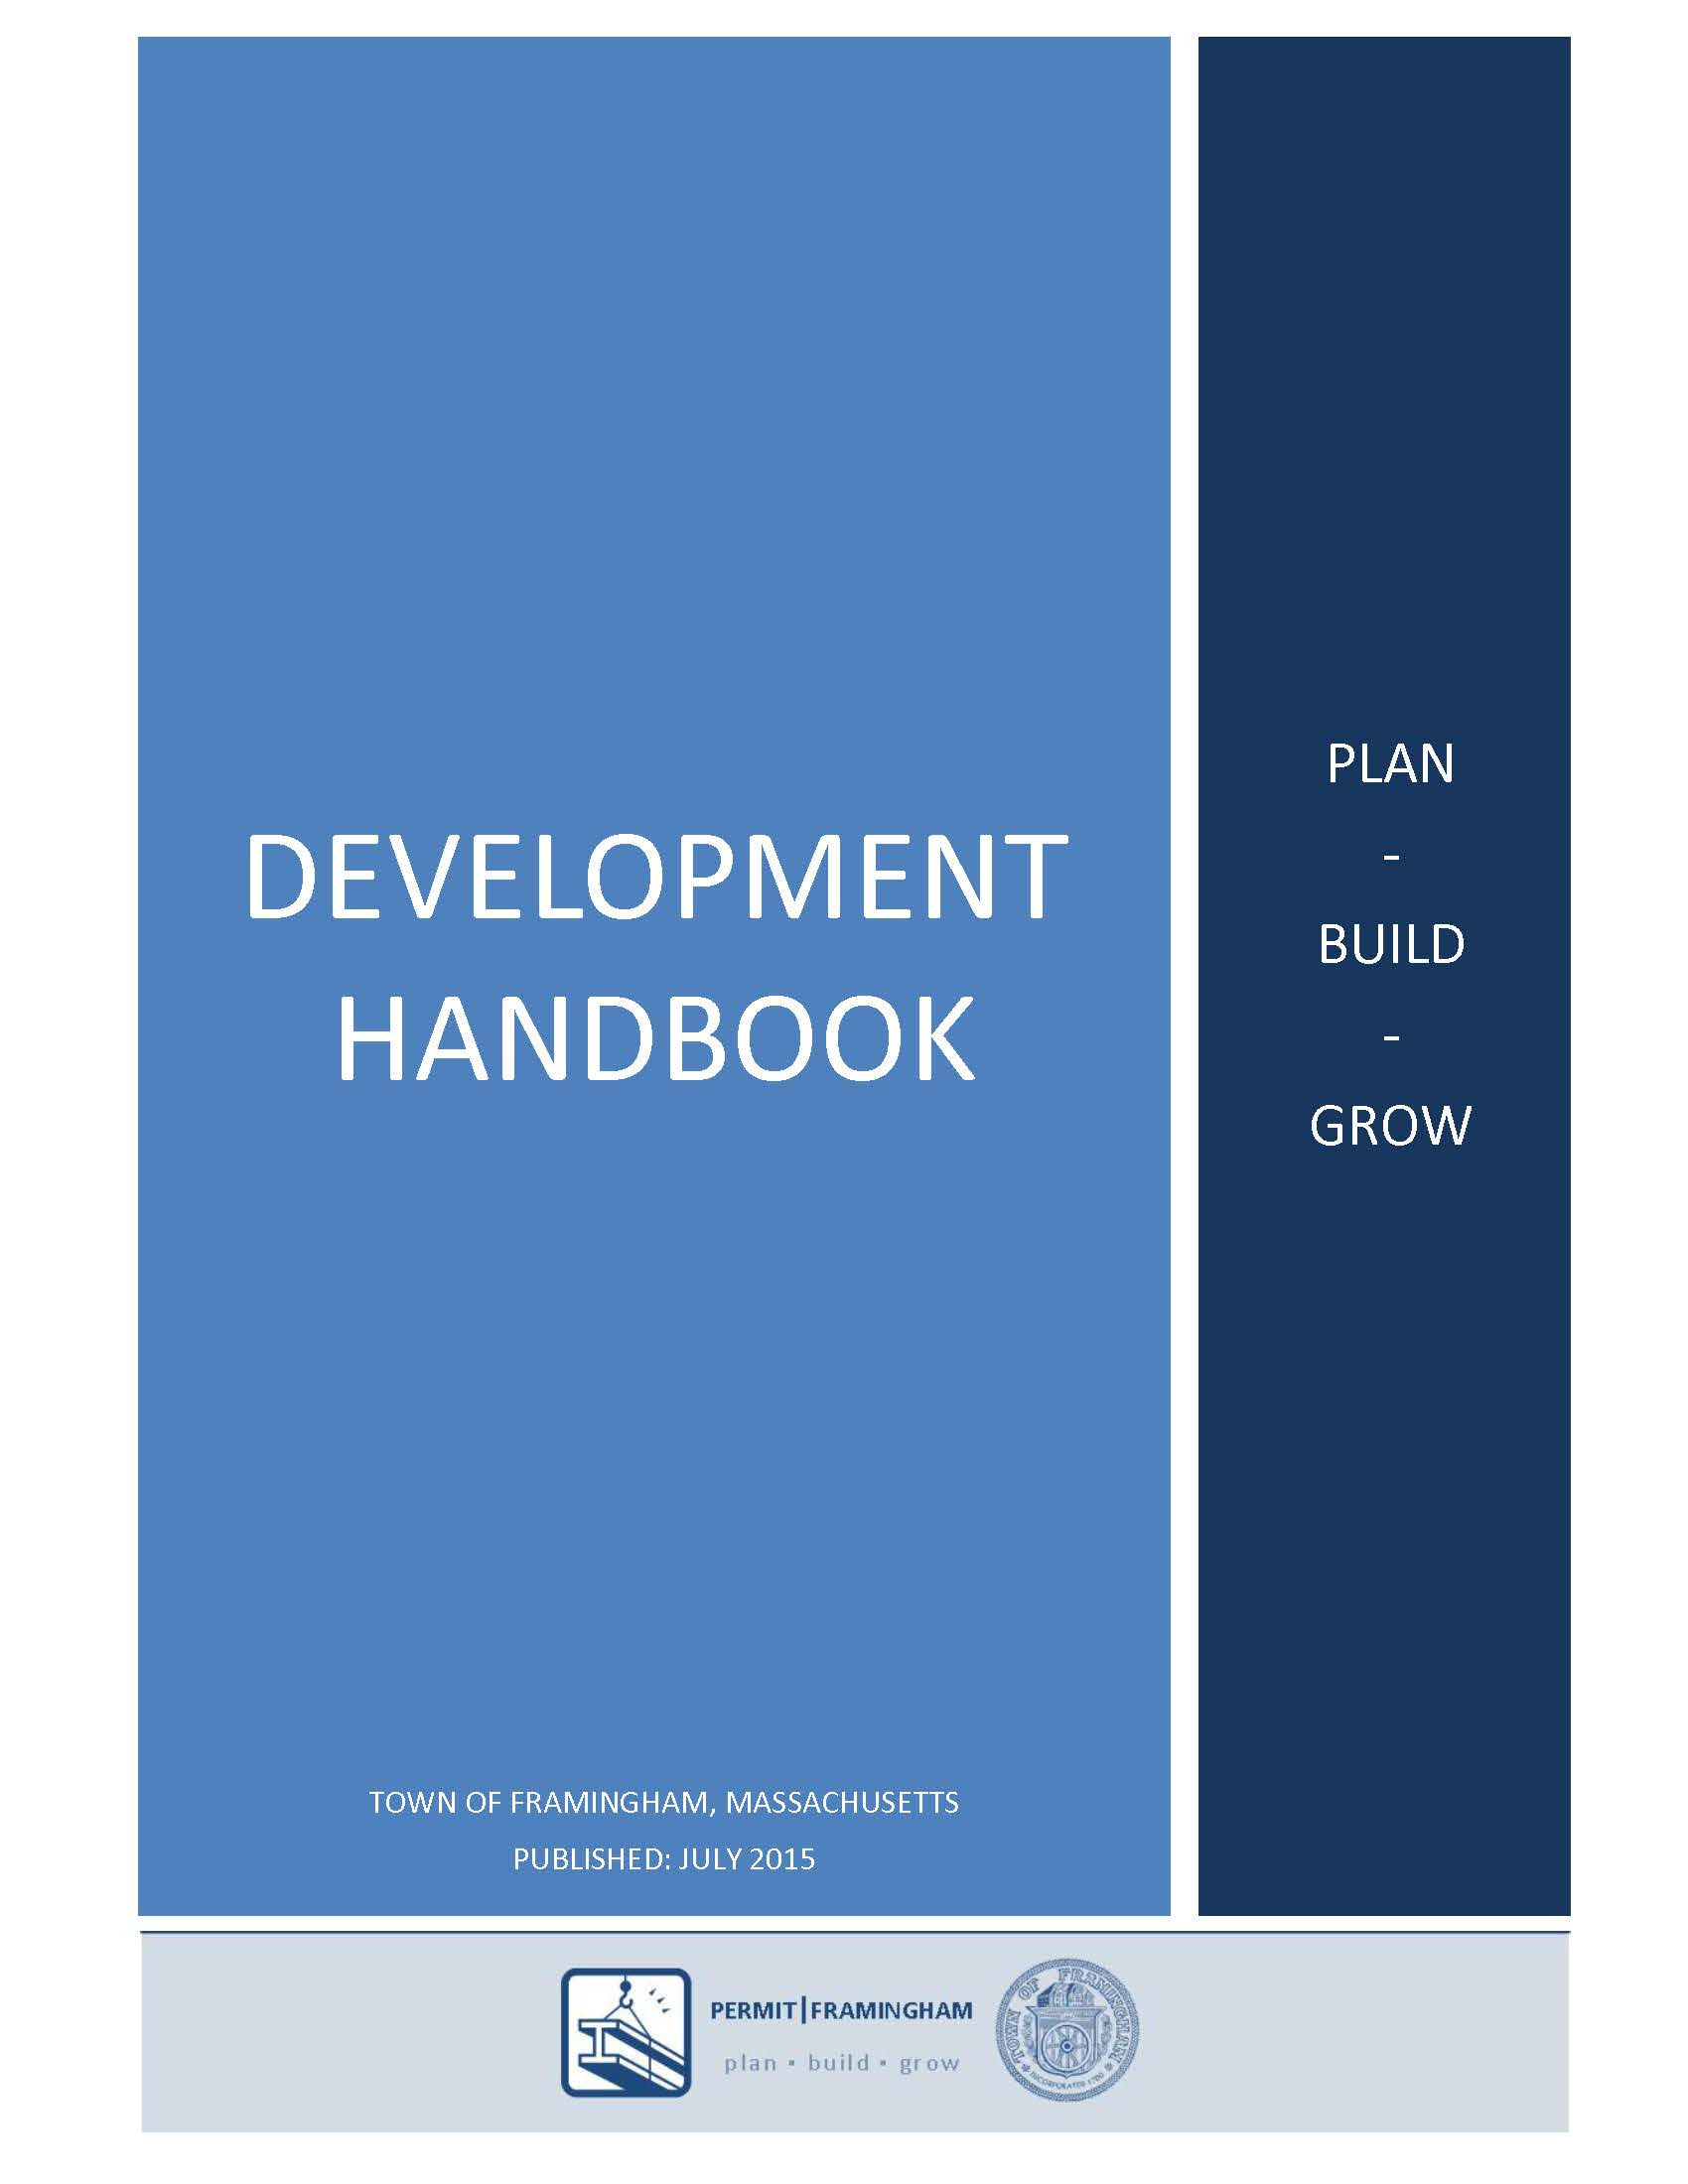 Document 2 Framingham Development Handbook